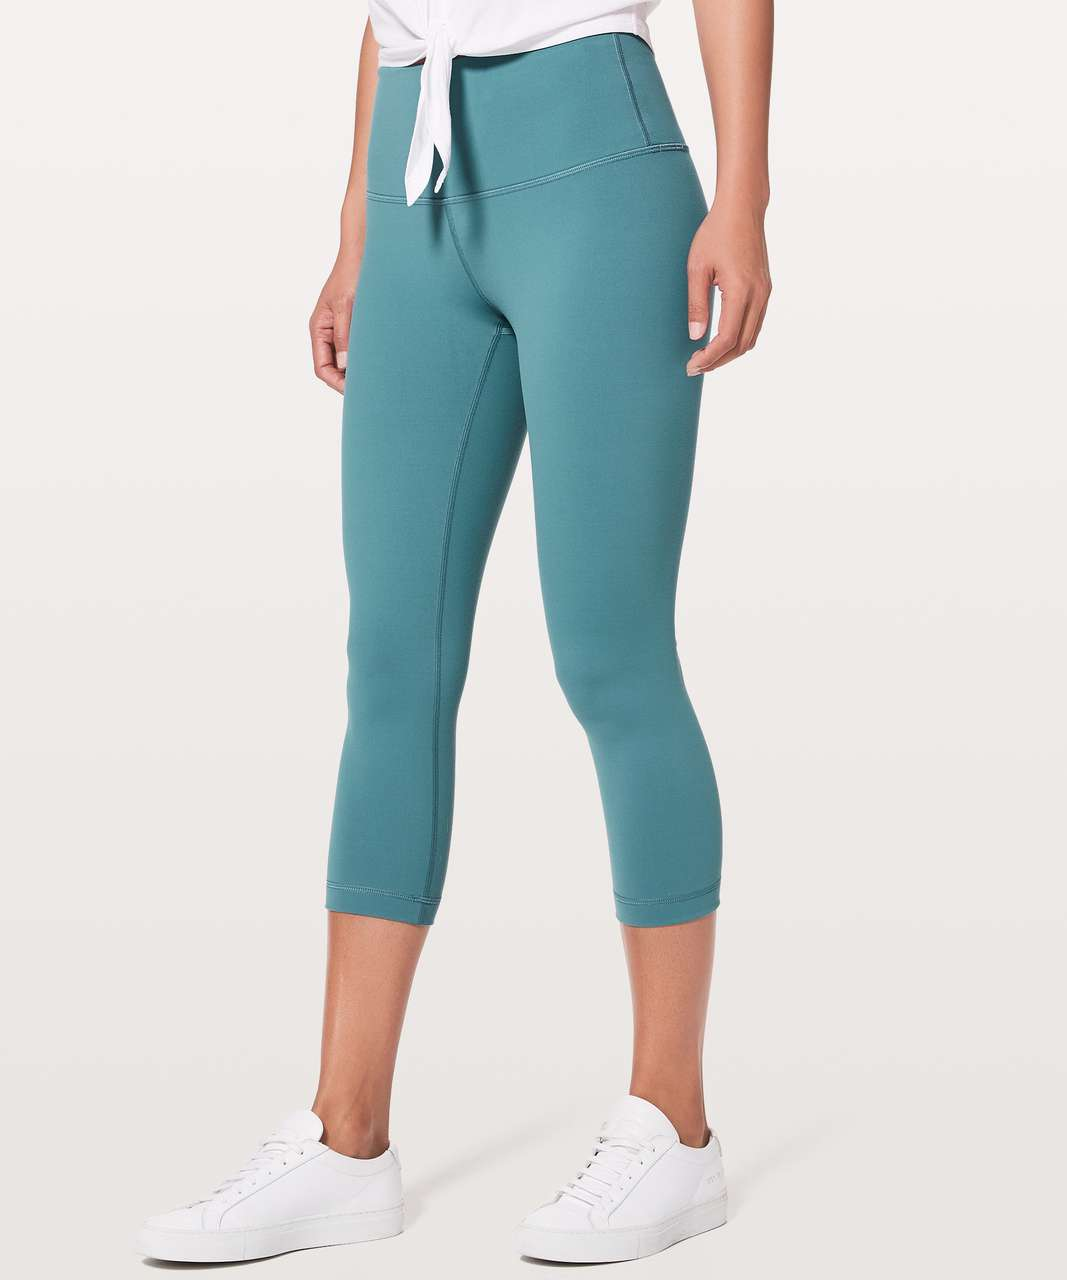 "Lululemon Wunder Under Crop (Hi-Rise) *Full-On Luon 21"" - Persian Blue"